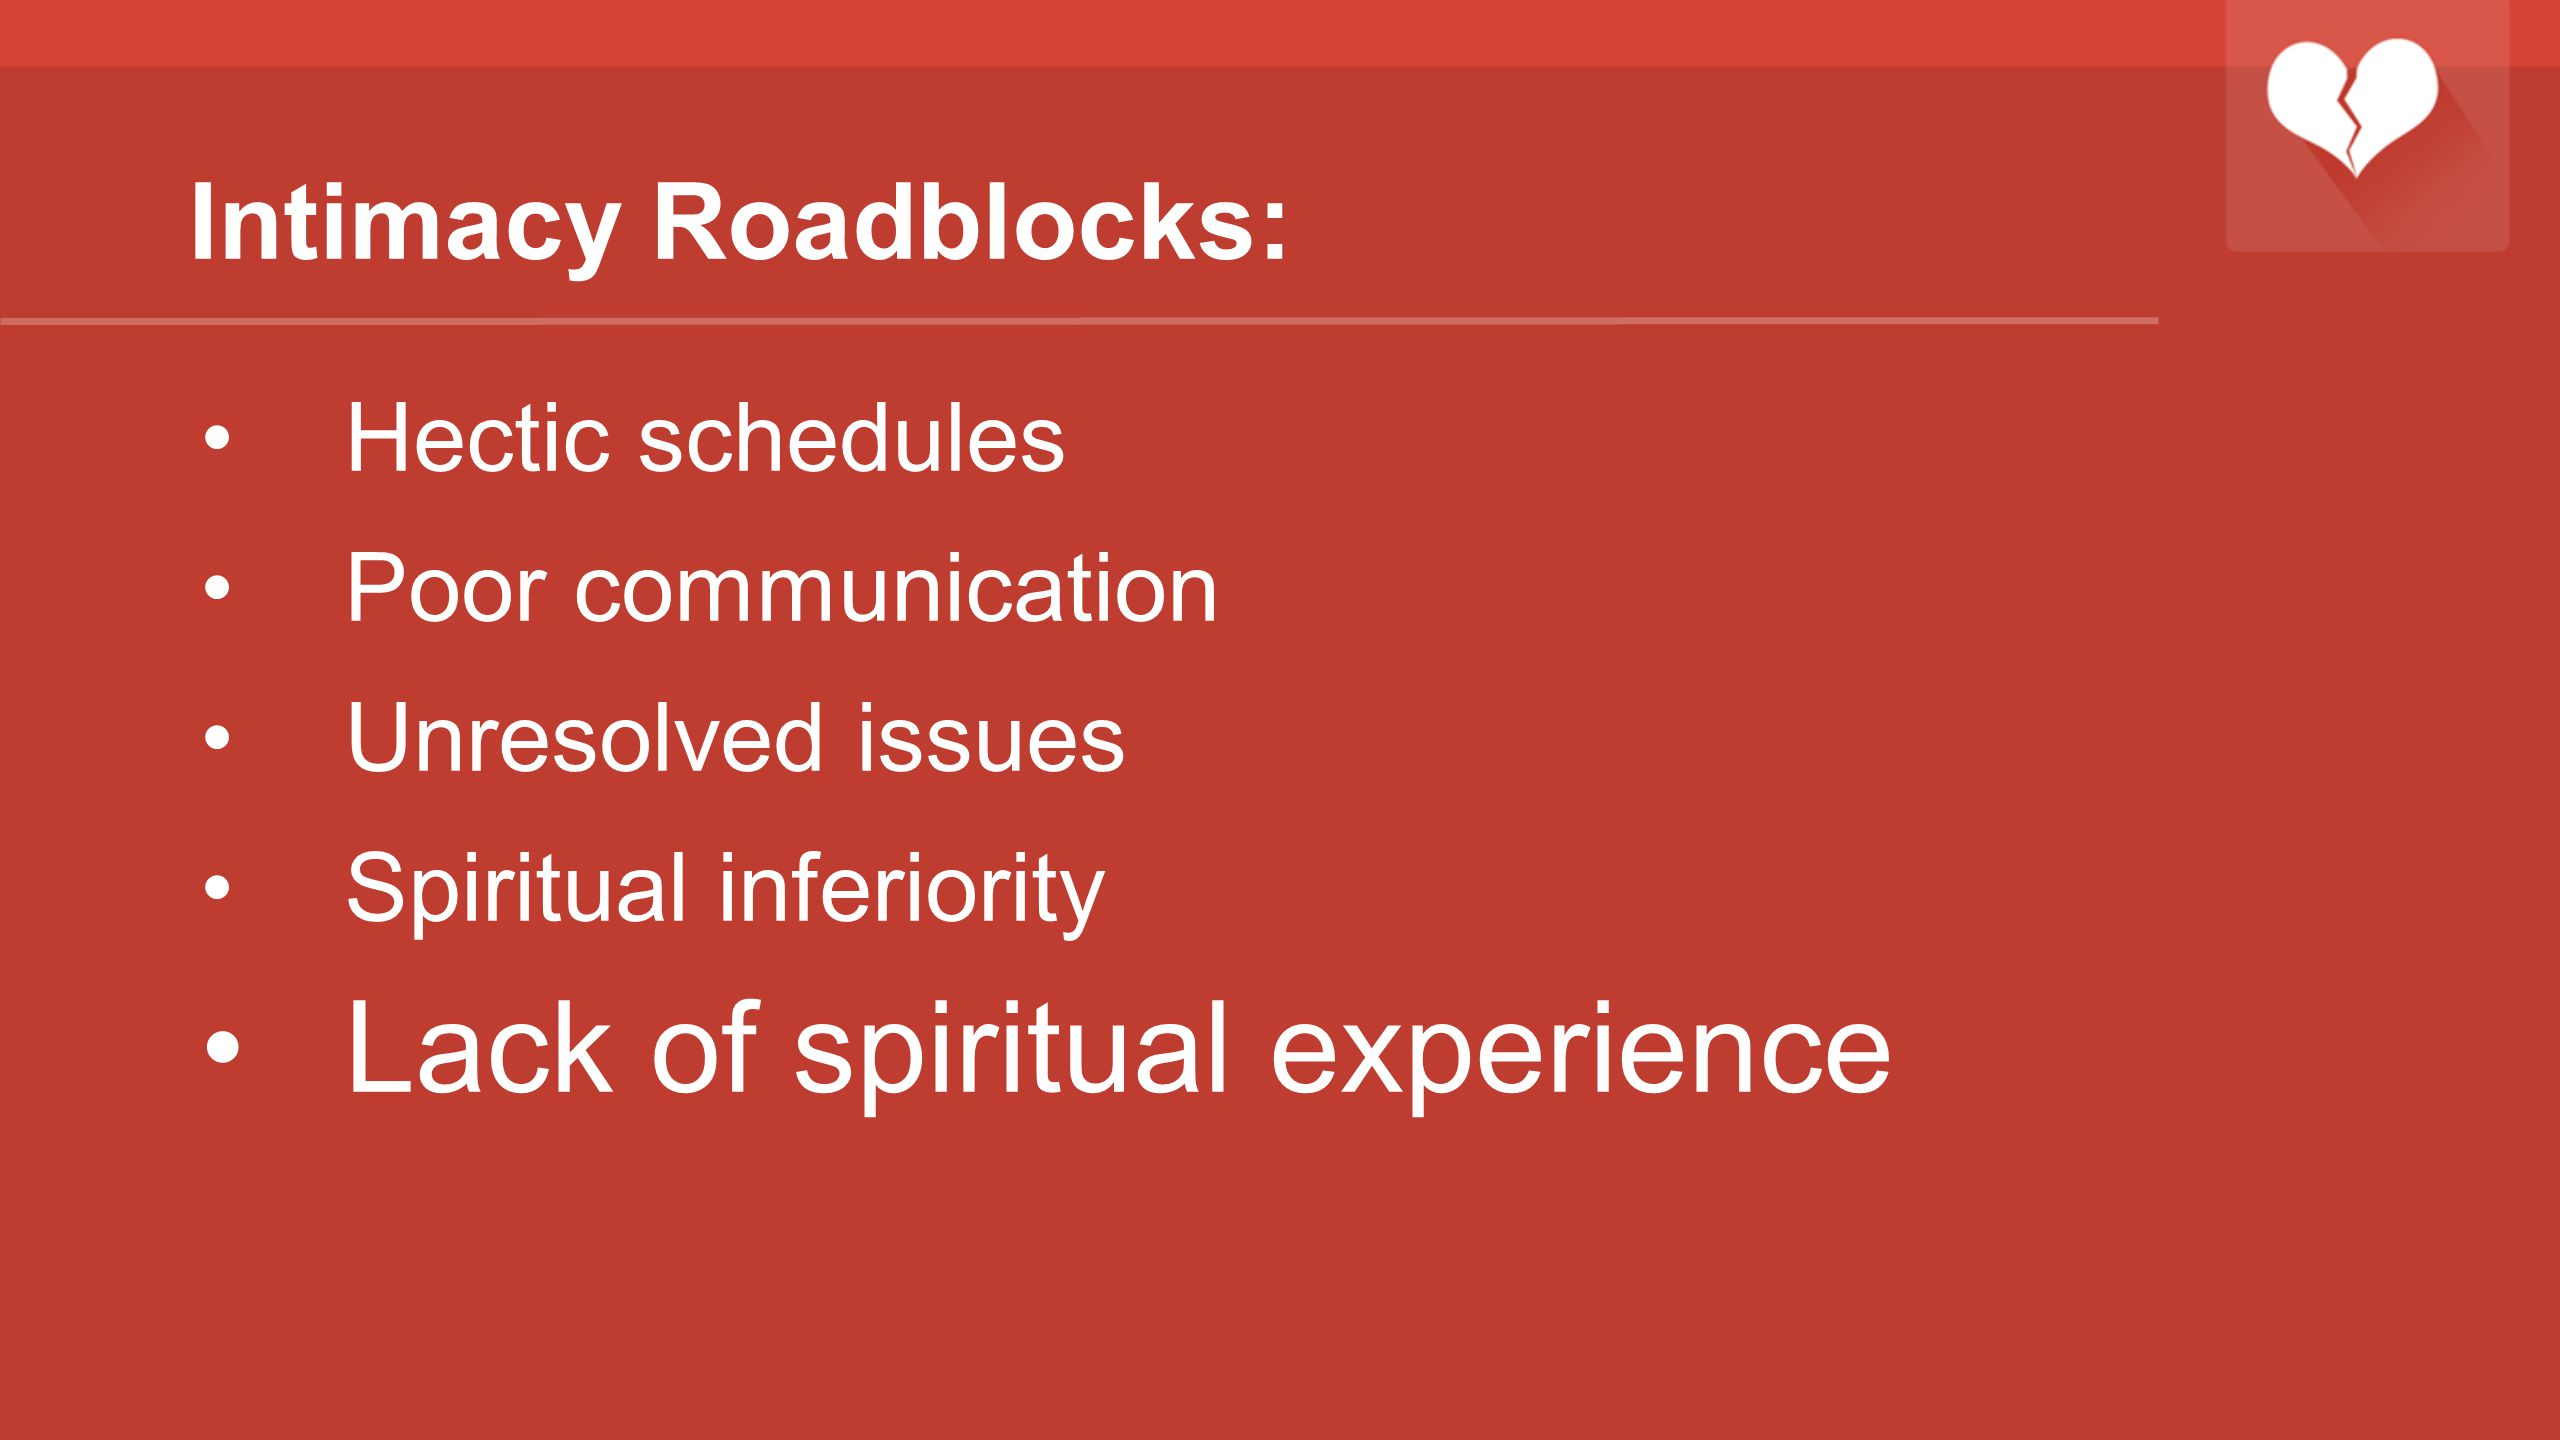 Intimacy Roadblocks: Hectic schedules Poor communication Unresolved issues Spiritual inferiority Lack of spiritual experience